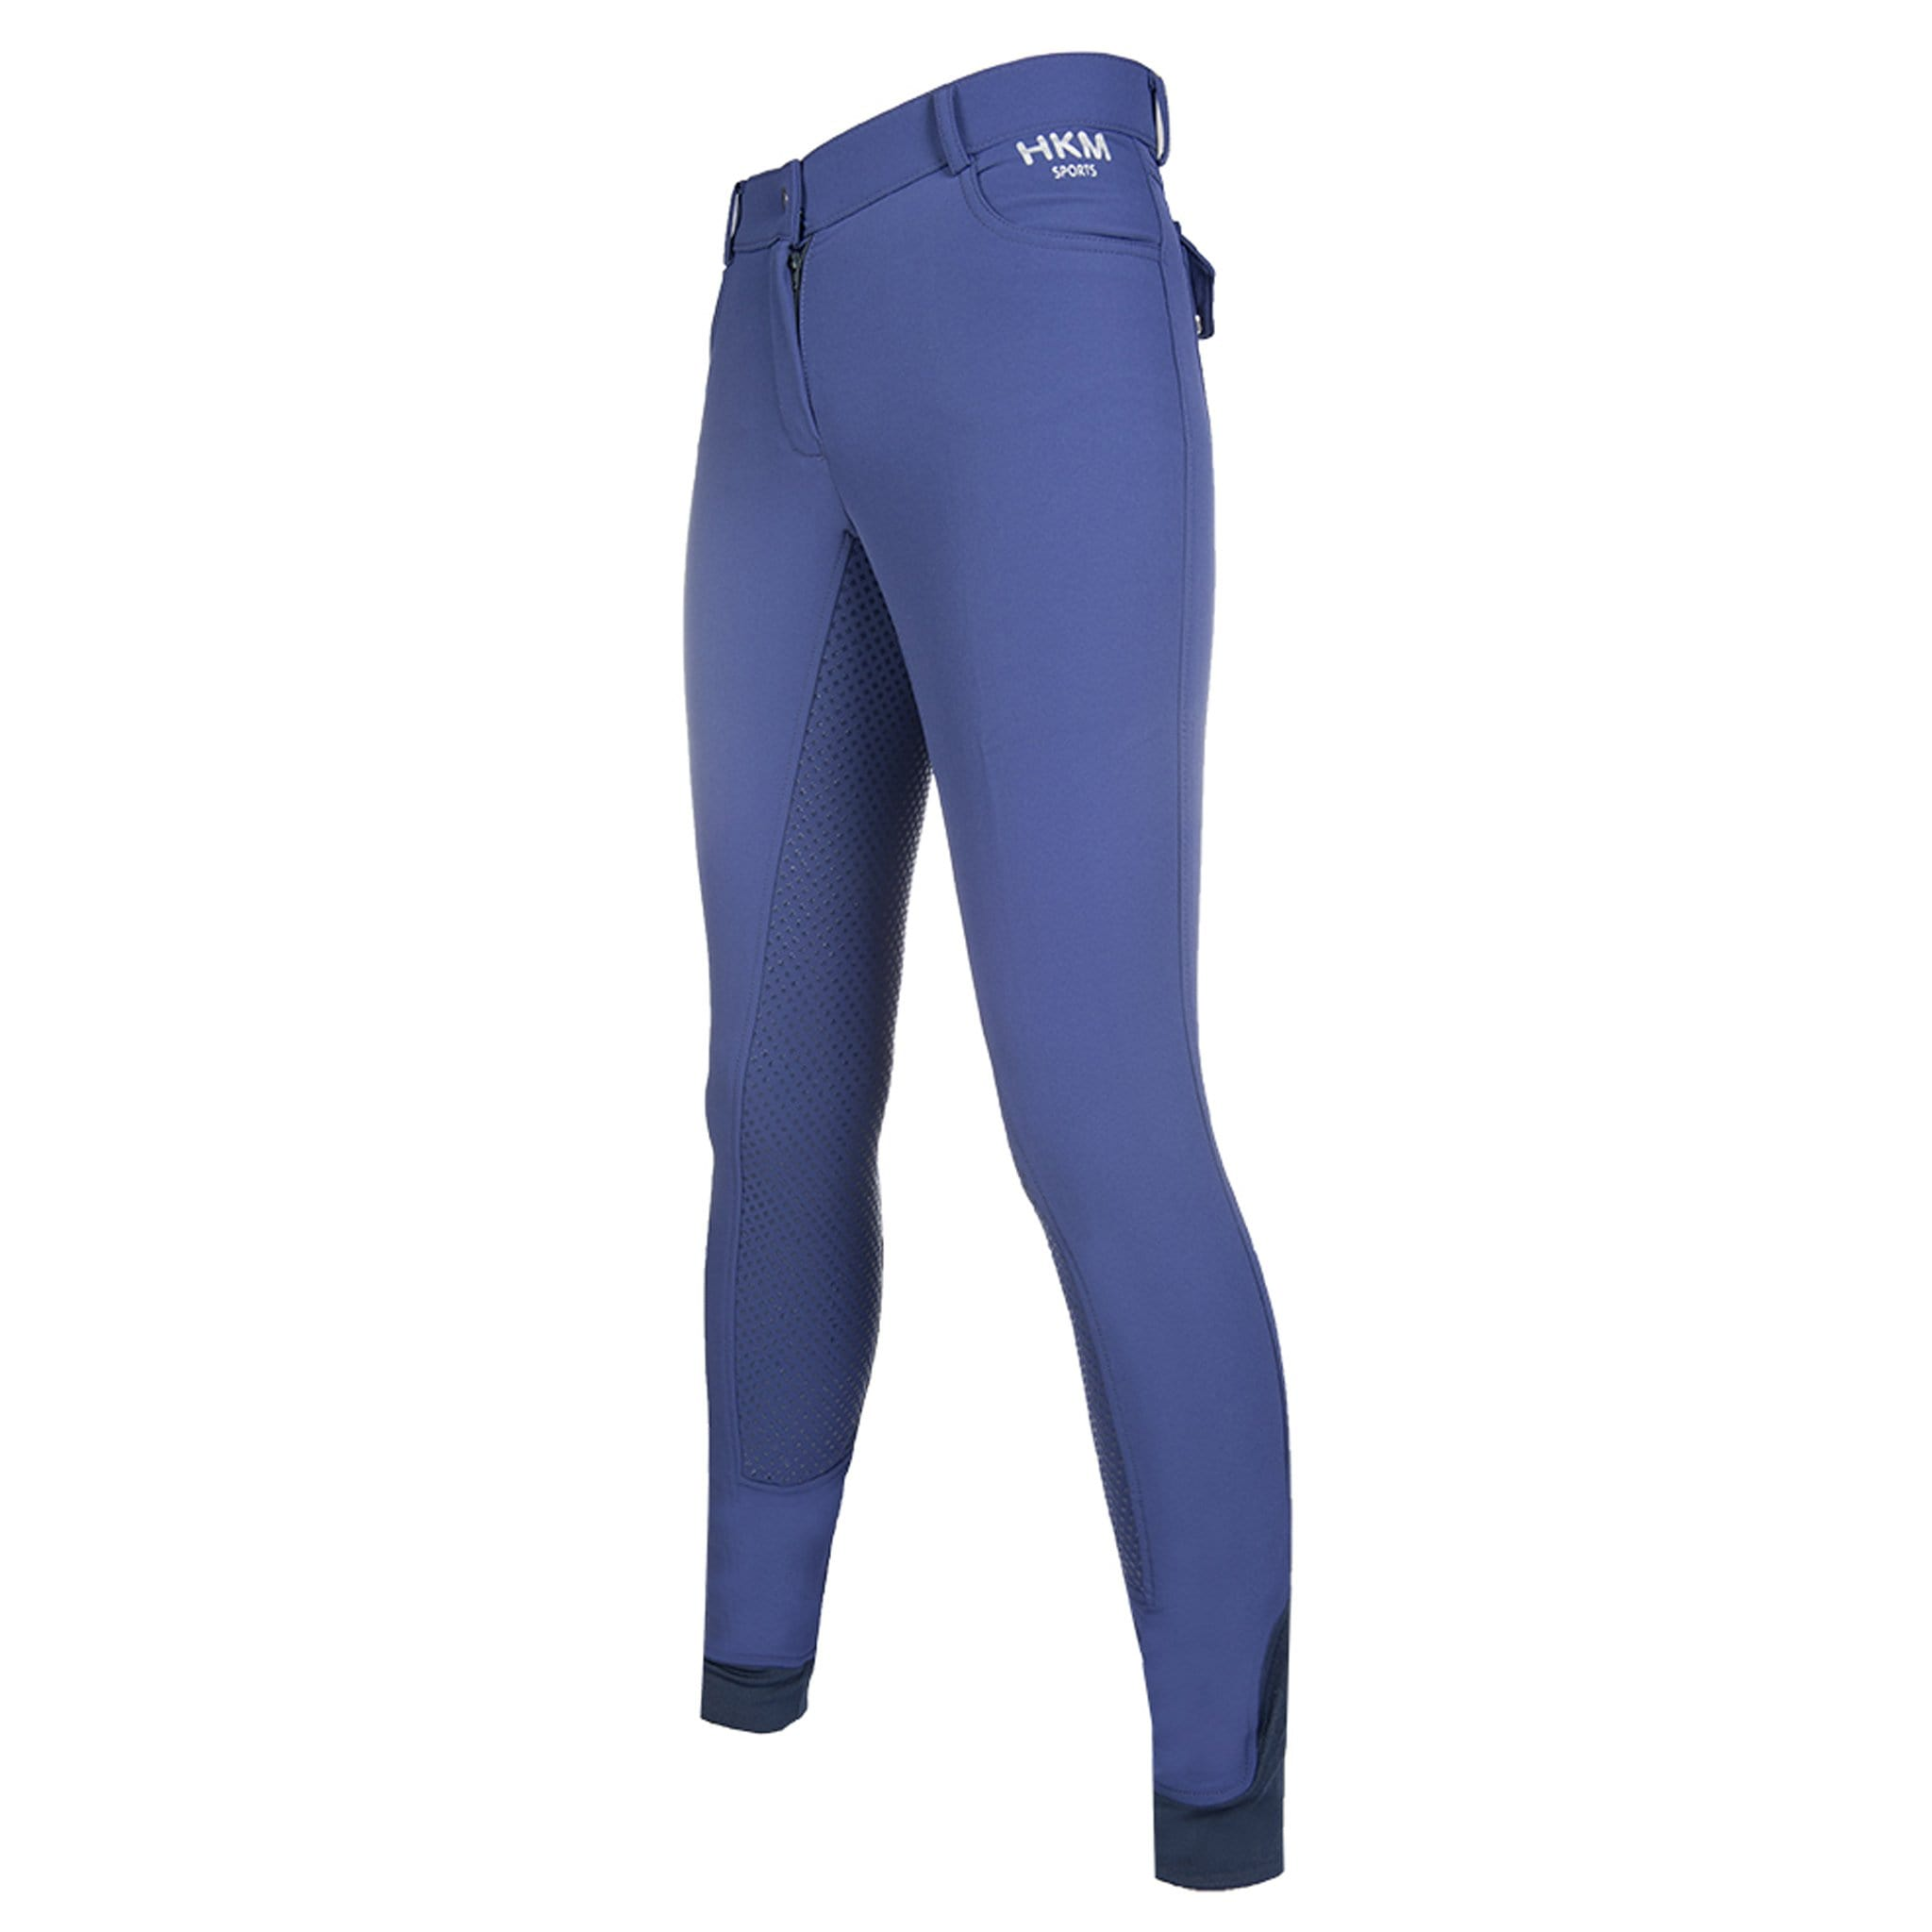 HKM Emma Silicone Full Seat Breeches 10919 Deep Blue Front Left View